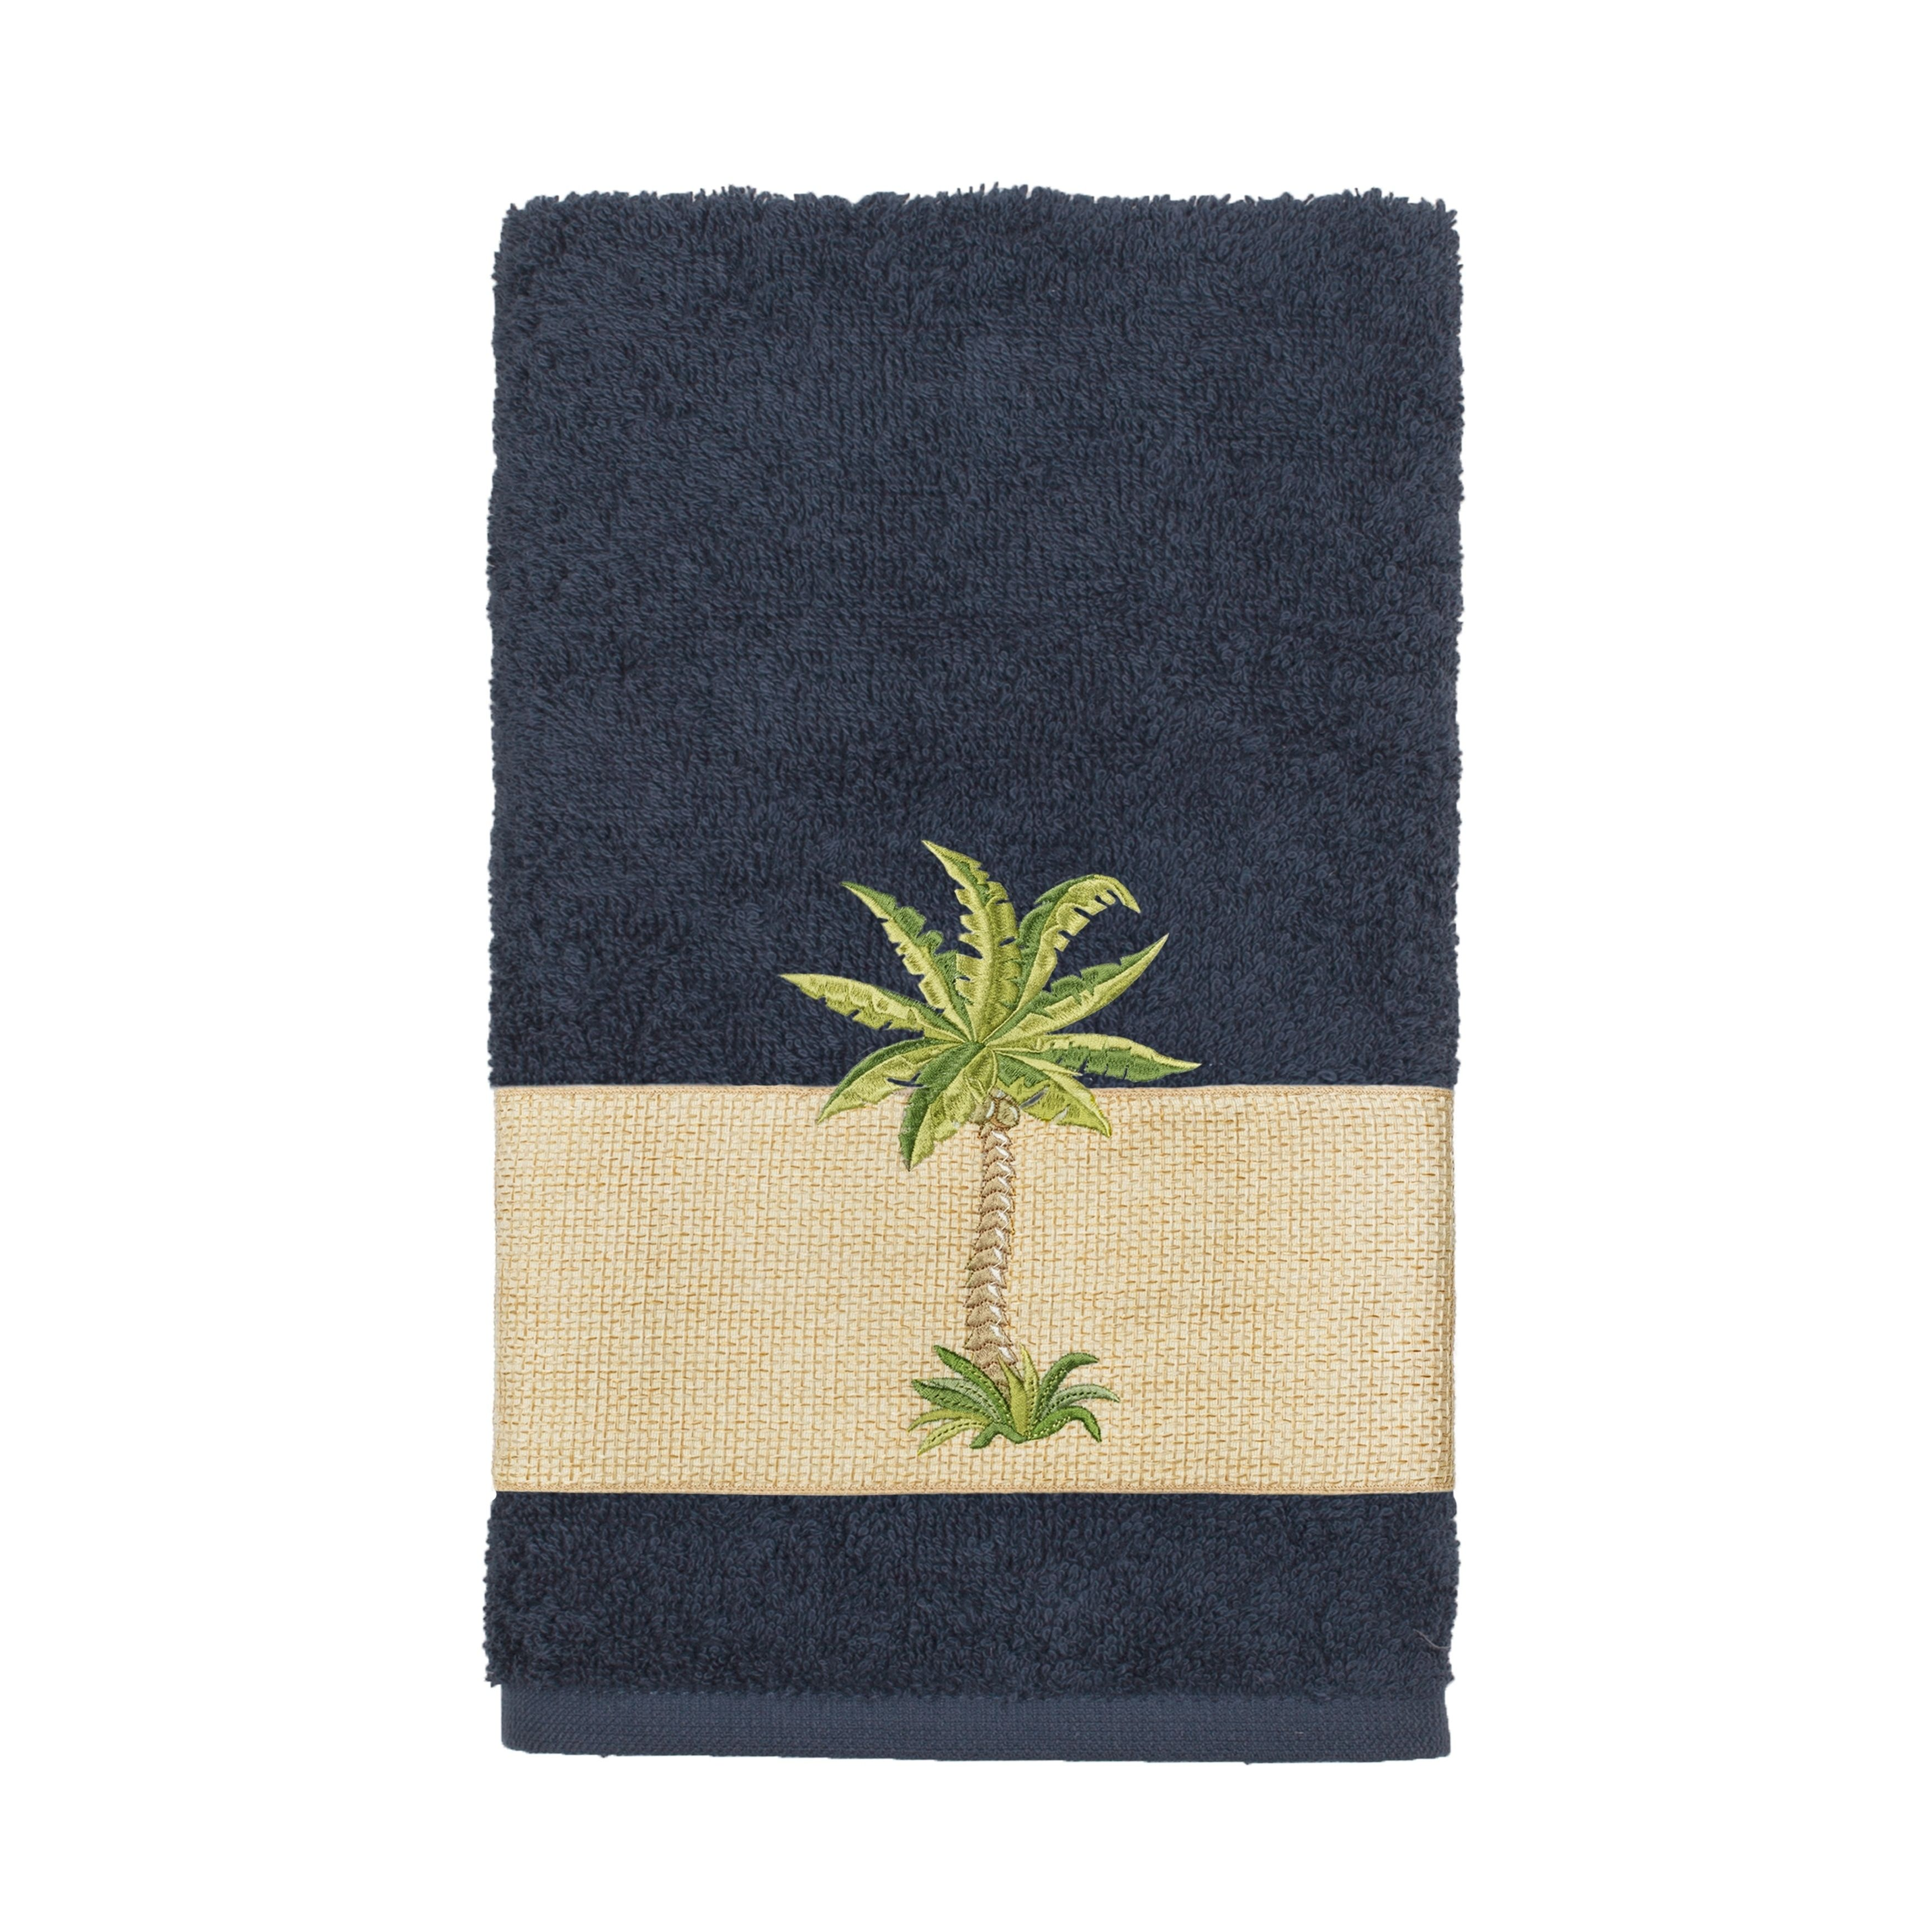 Authentic Hotel And Spa Turkish Cotton Palm Tree Embroidered